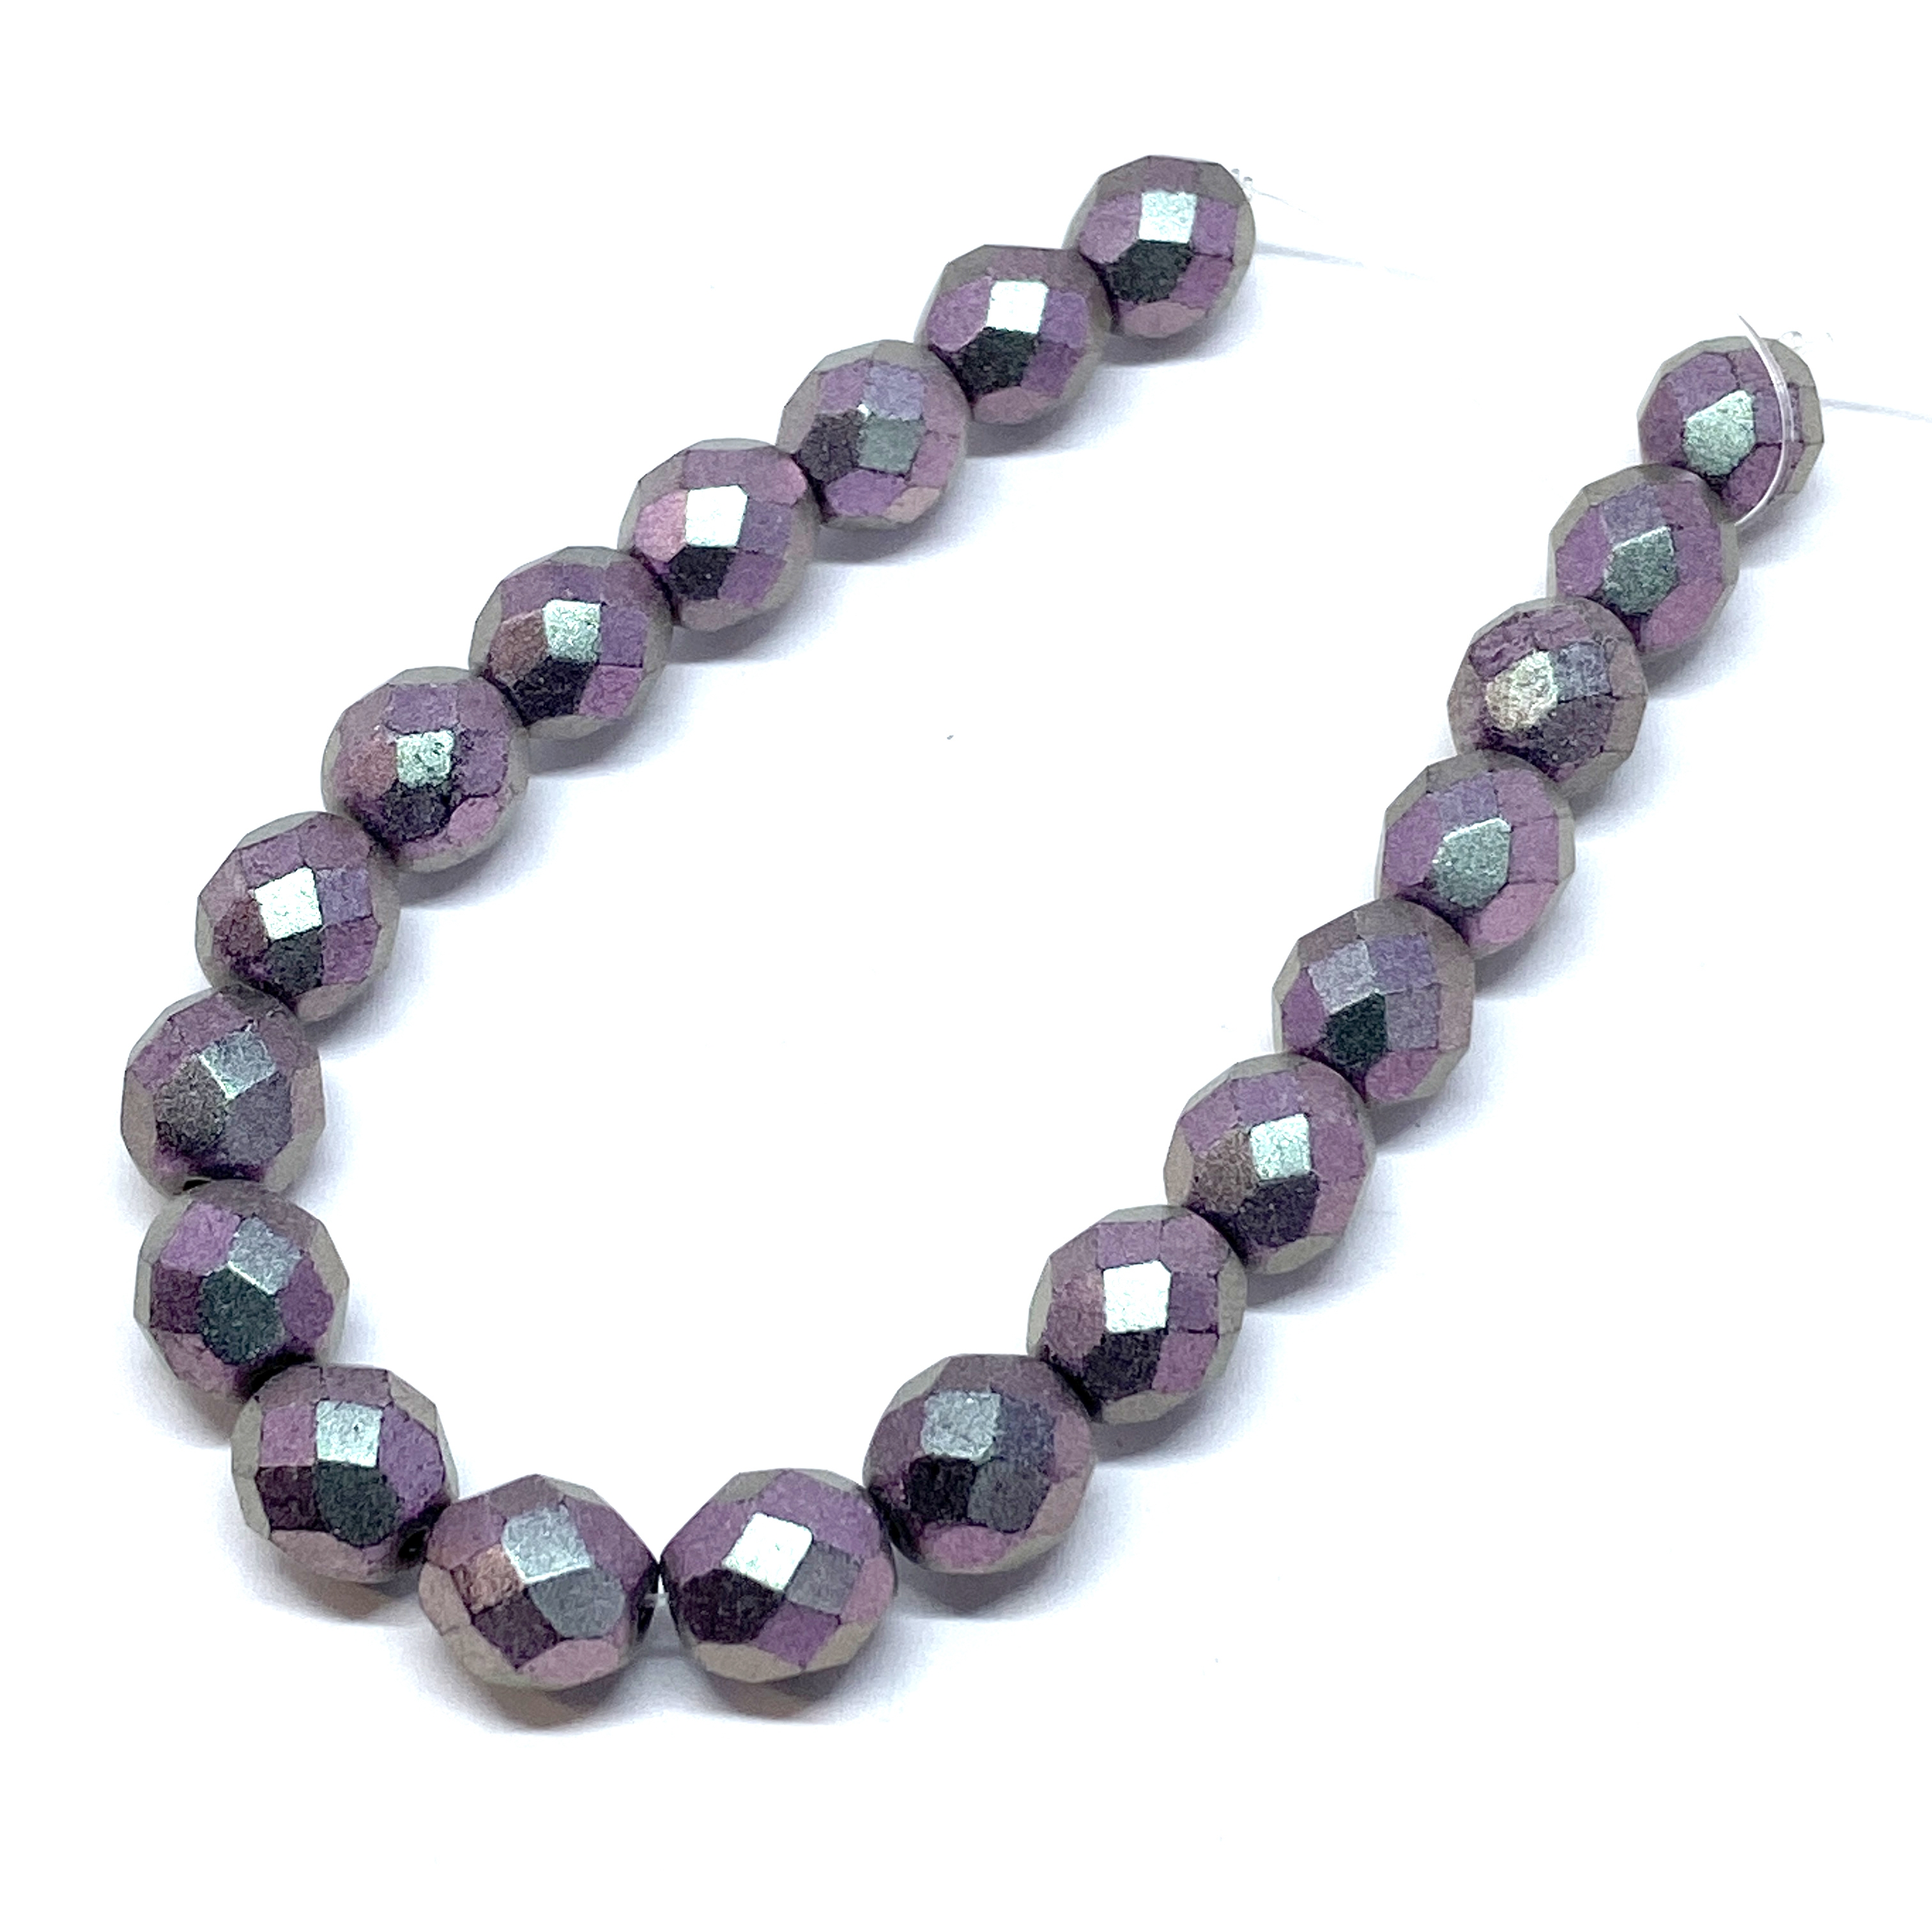 Czech glass beads, matte metallic purple, glass beads, beads, fire polished, purple beads, faceted beads, beading supplies, jewelry making, B'sue Boutiques, temp strung beads, 8mm bead, 8mm, 01526